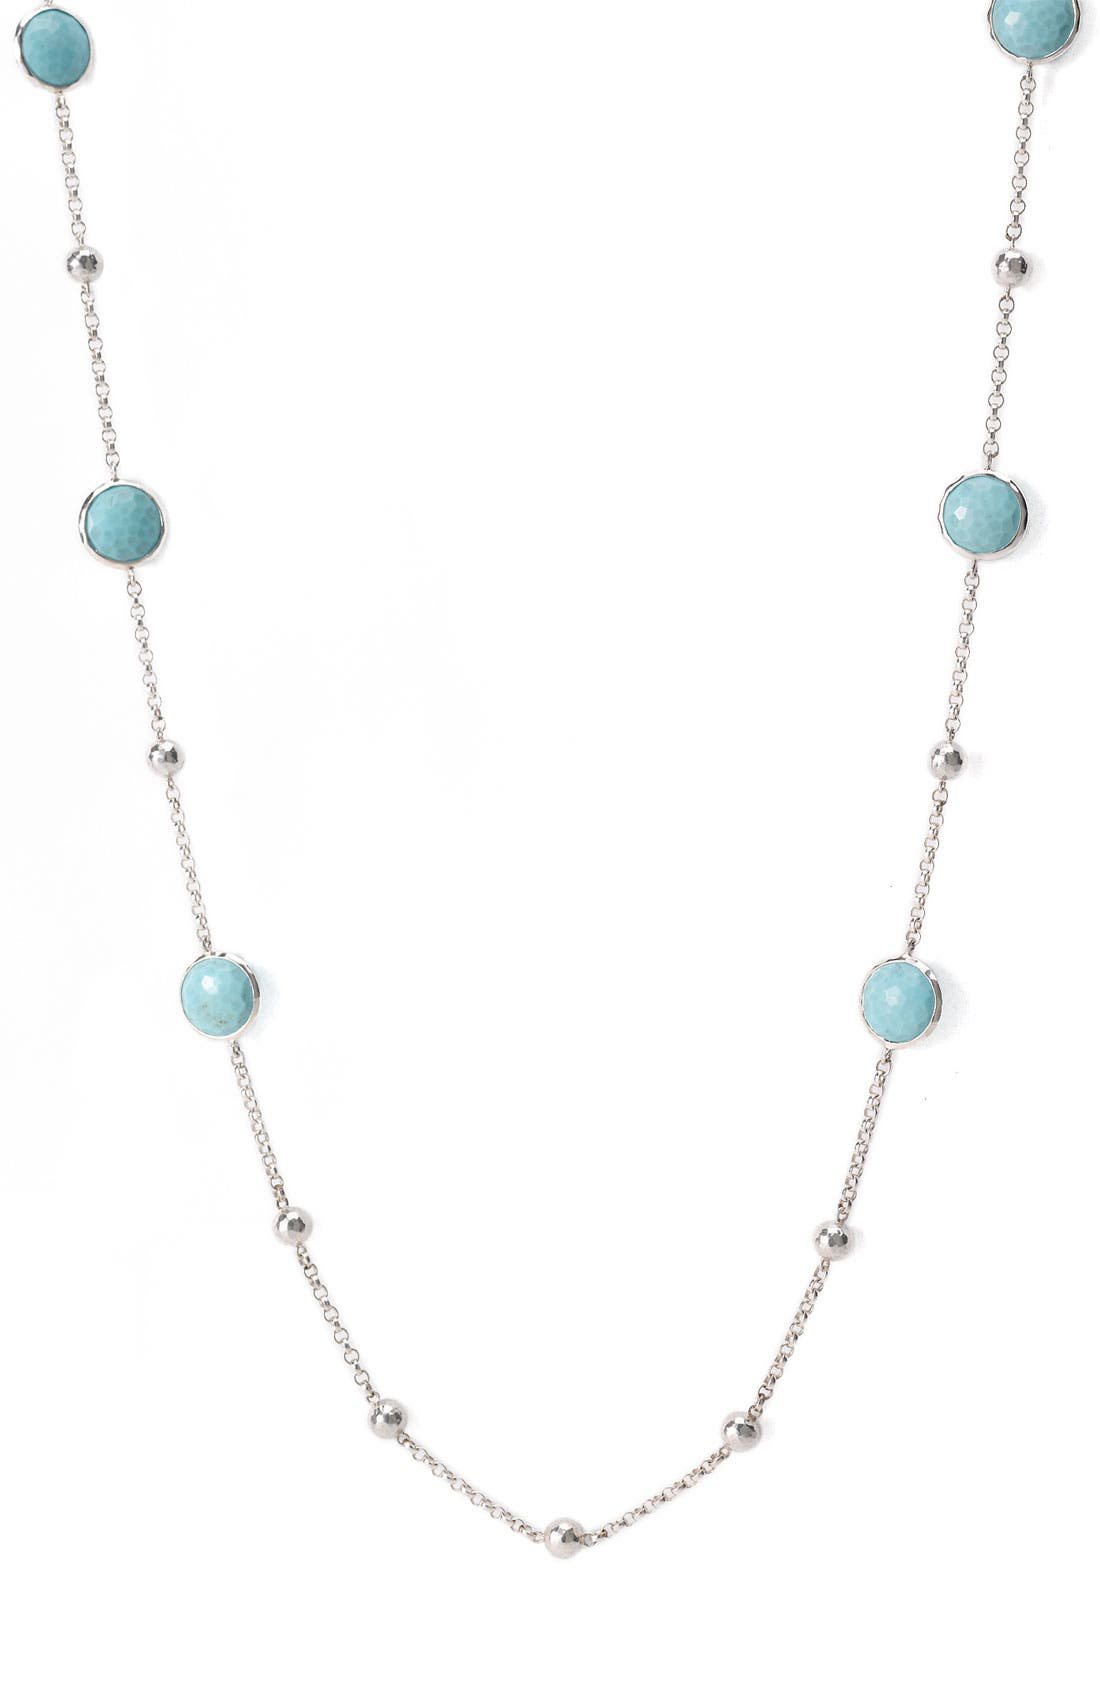 'Rock Candy - Mini Lollipop' Long Necklace,                         Main,                         color, Silver - Turquoise